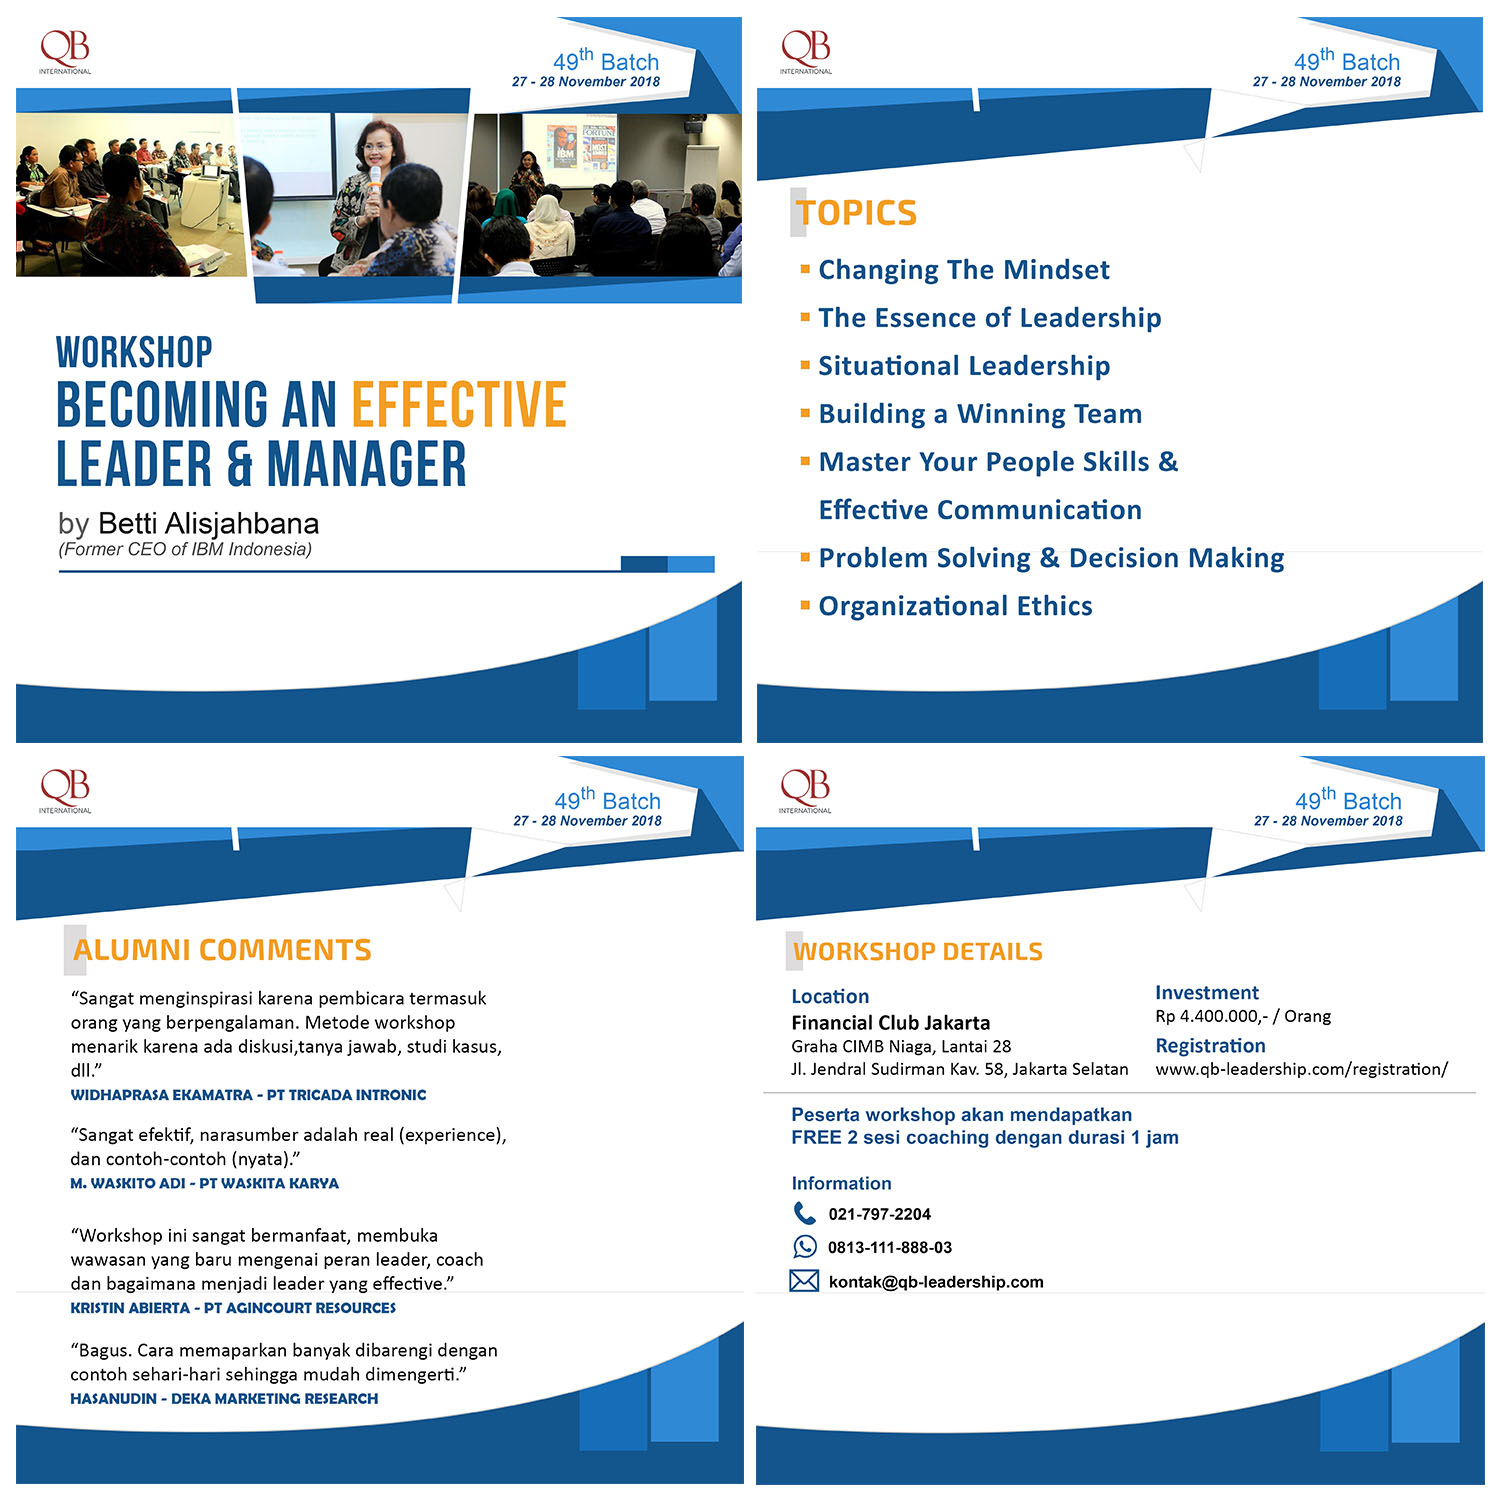 Workshop Becoming an Effective Leader & Manager by Betti Alisjahabana (Former CEO of IBM Indones